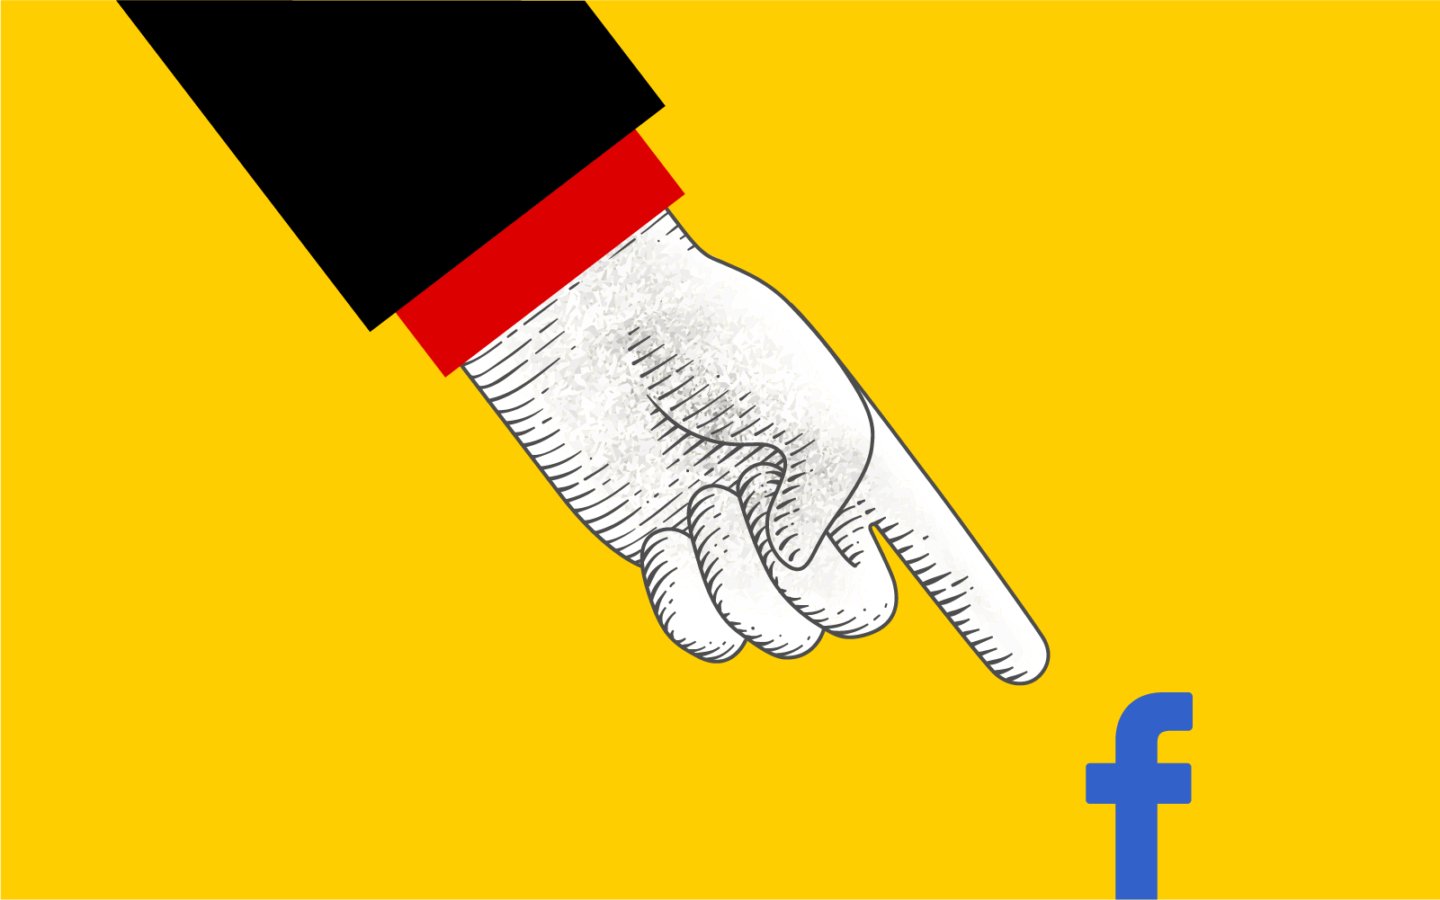 Bundeskartellamt vs Facebook